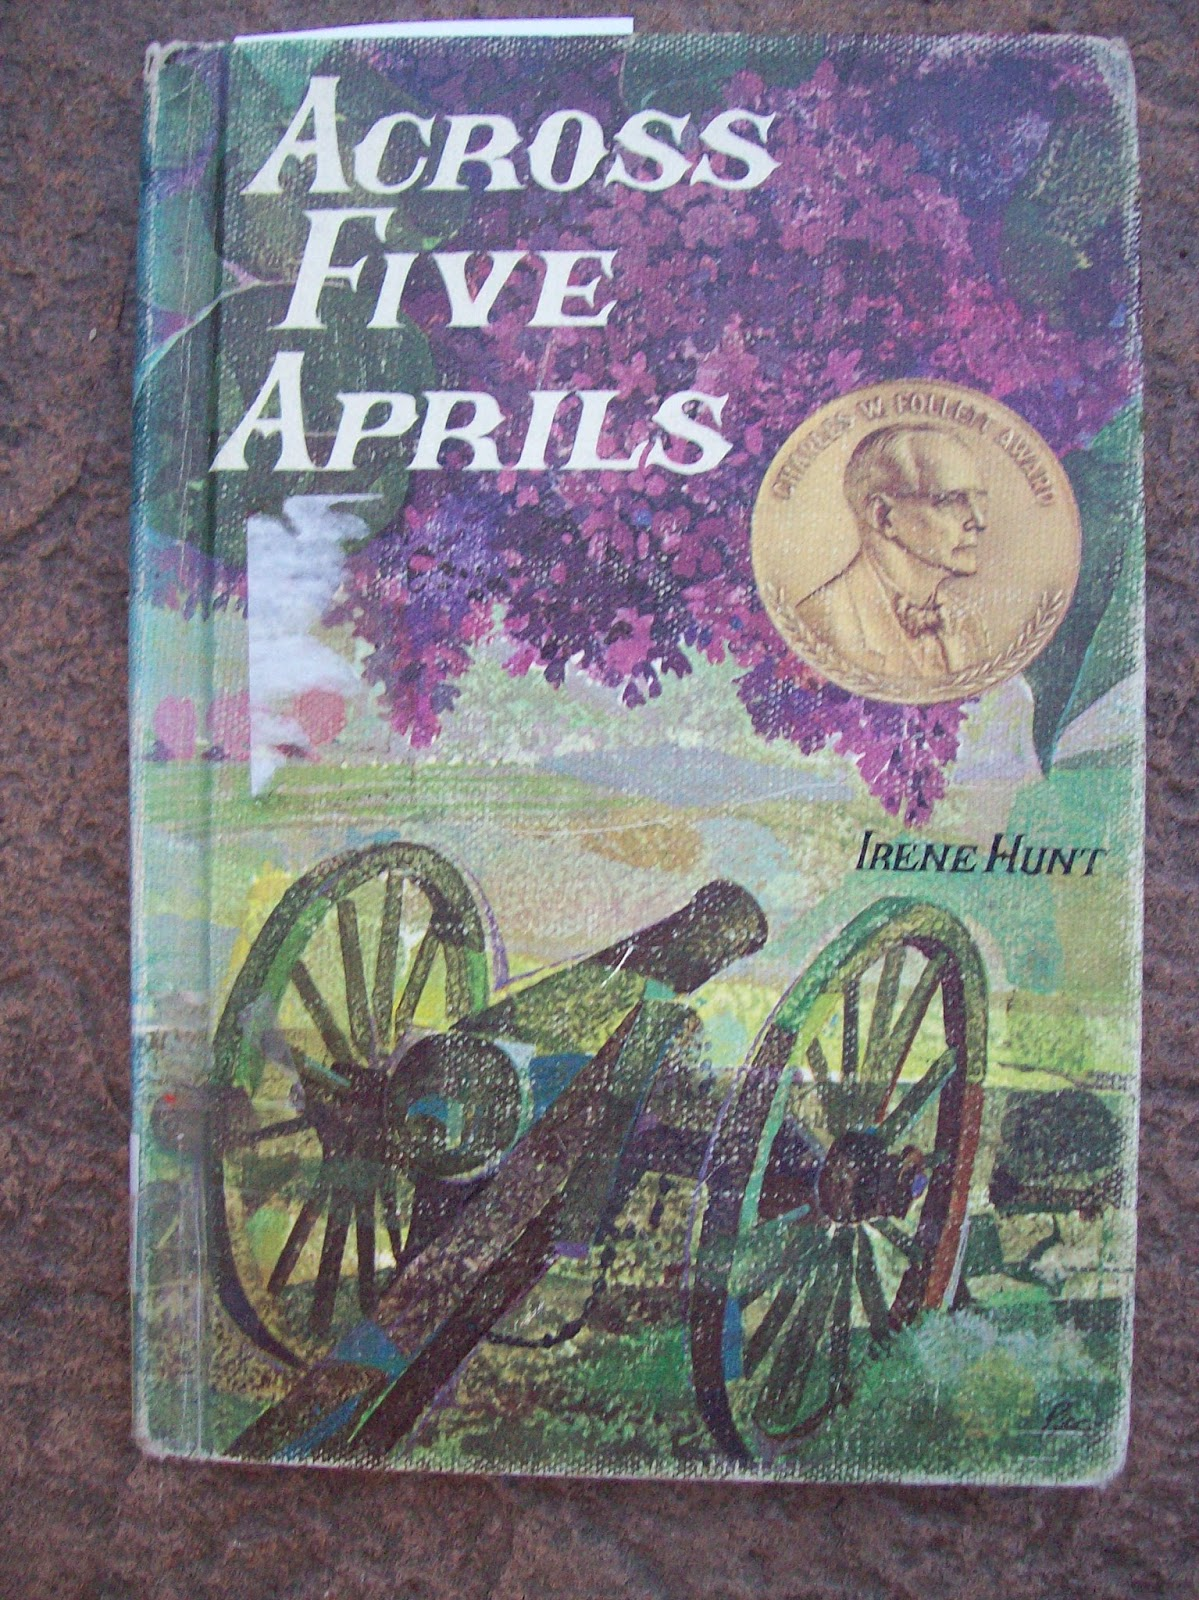 a character analysis of the book across five aprils Across five aprils is a novel by irene hunt, published in 1964 and winner of the 1965 newbery honor, set in the civil war era irene was close to her grandfather who told her stories from his youth irene incorporated them into across five aprils.